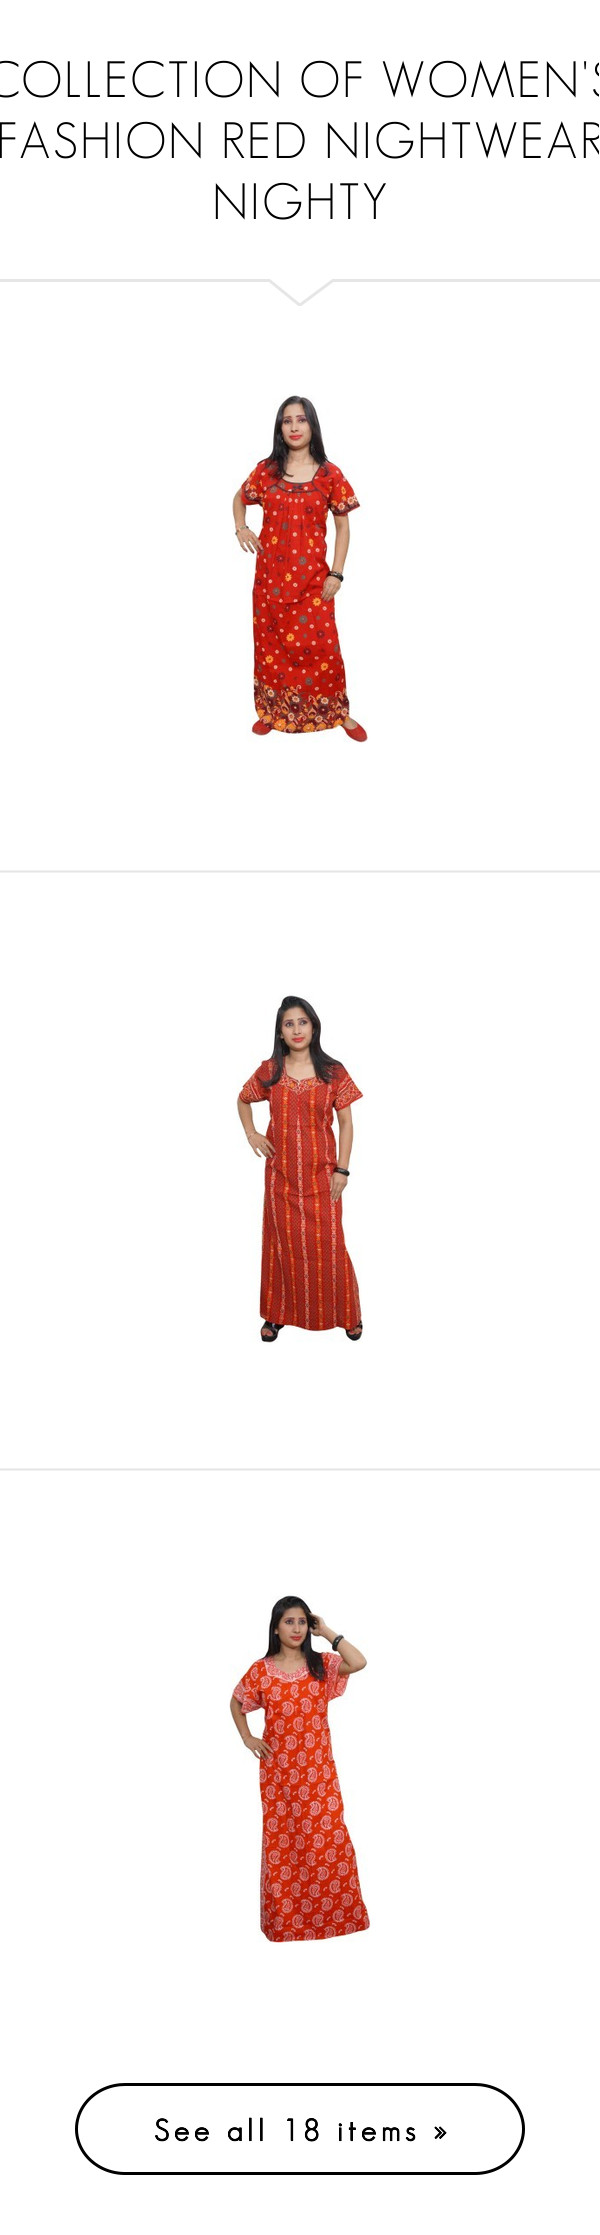 """COLLECTION OF WOMEN'S FASHION RED NIGHTWEAR NIGHTY"" by globaltrendzs-flipkart ❤ liked on Polyvore featuring intimates, sleepwear, nightgowns, red nightie and red nightgown"